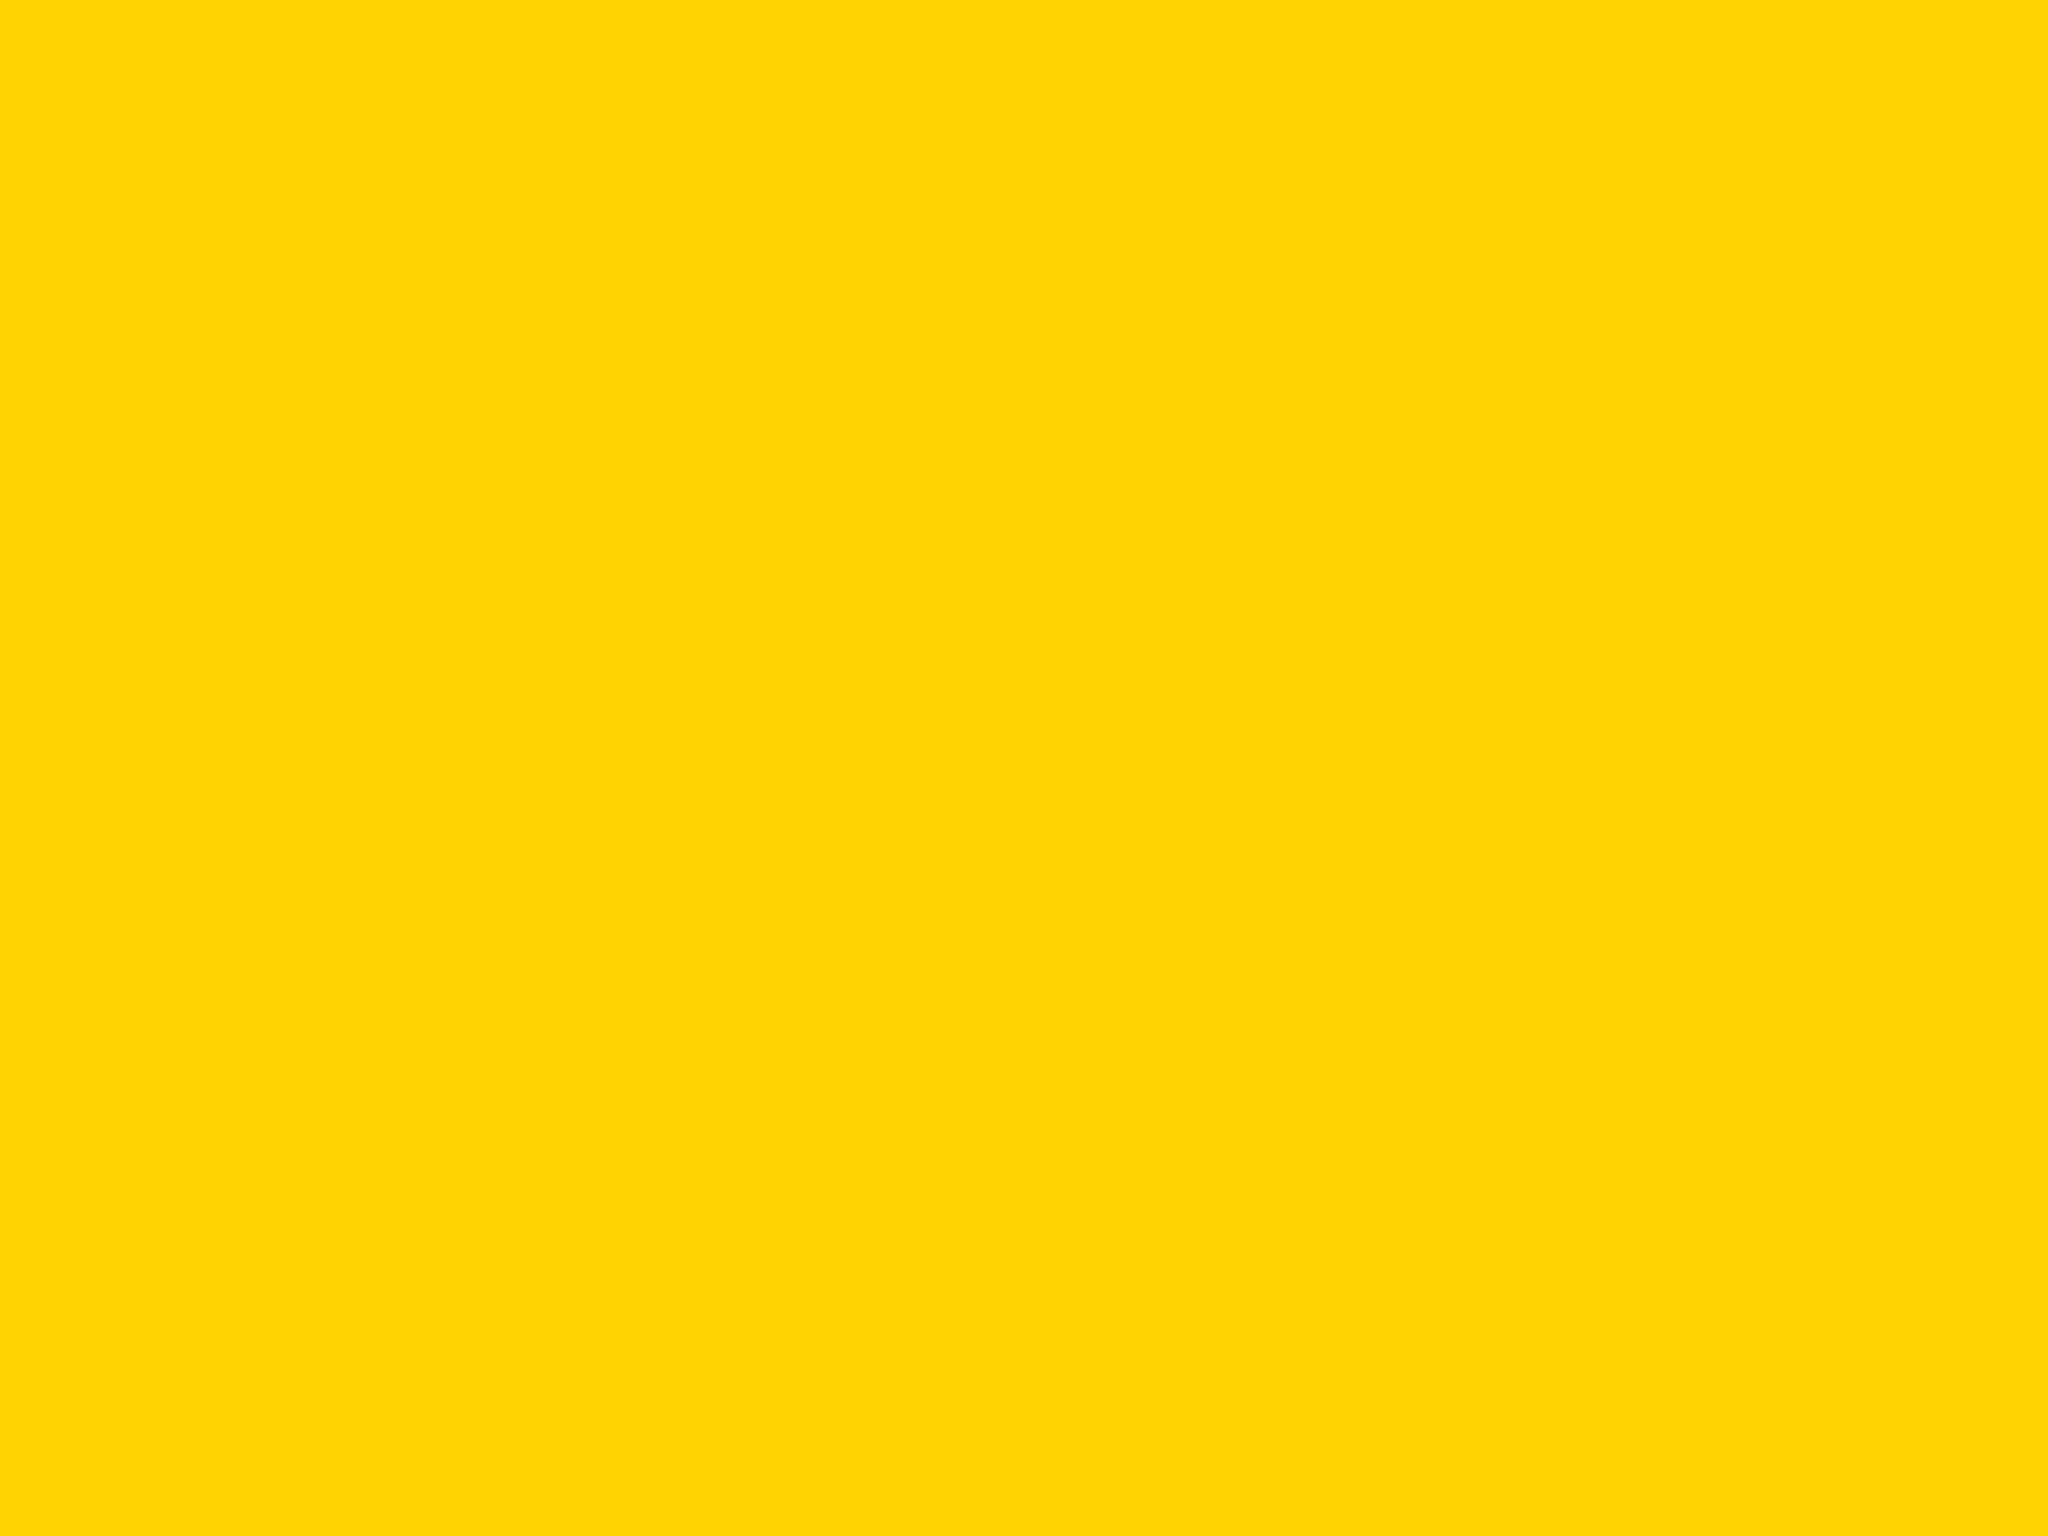 2048x1536 Yellow NCS Solid Color Background